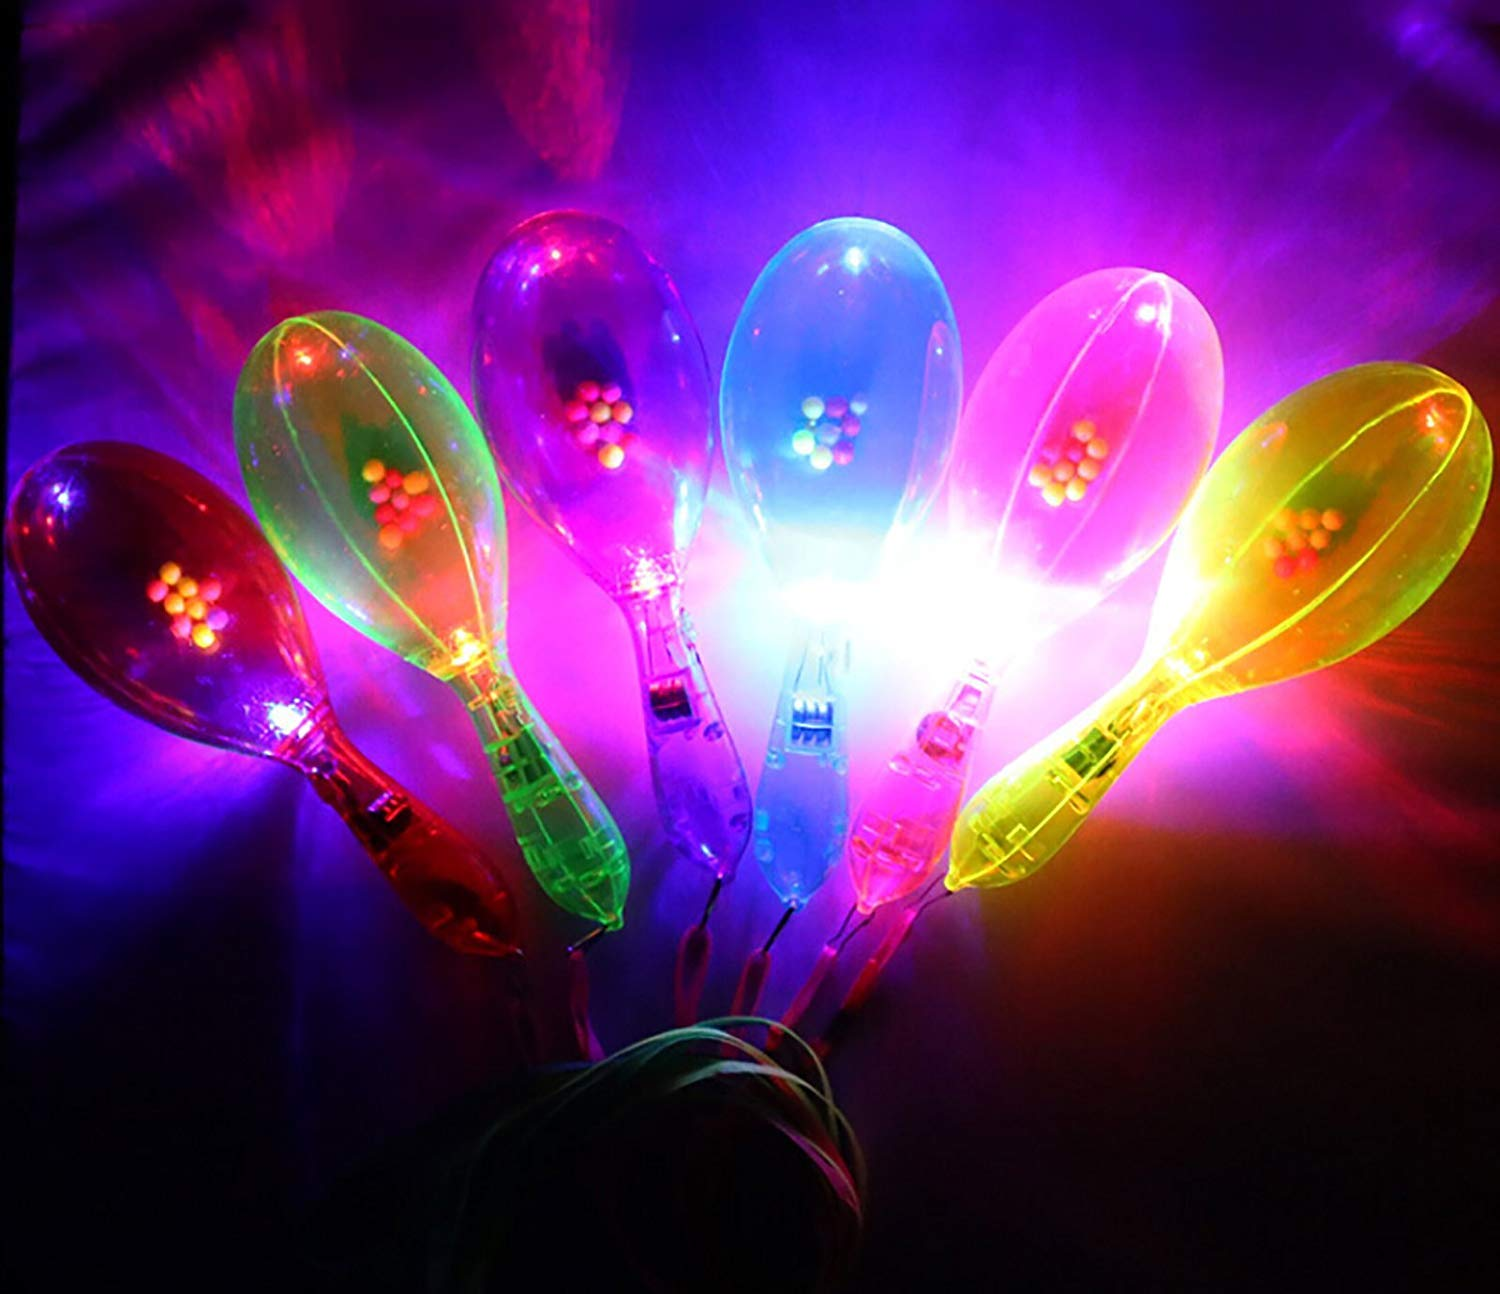 B bangcool 12PCS Light Up Maracas LED Maraca Noise Maker Shaker Toys Musical Toy Party Portable Cheering Light Up LED Rattle Toy ( Random Color with Lanyard)